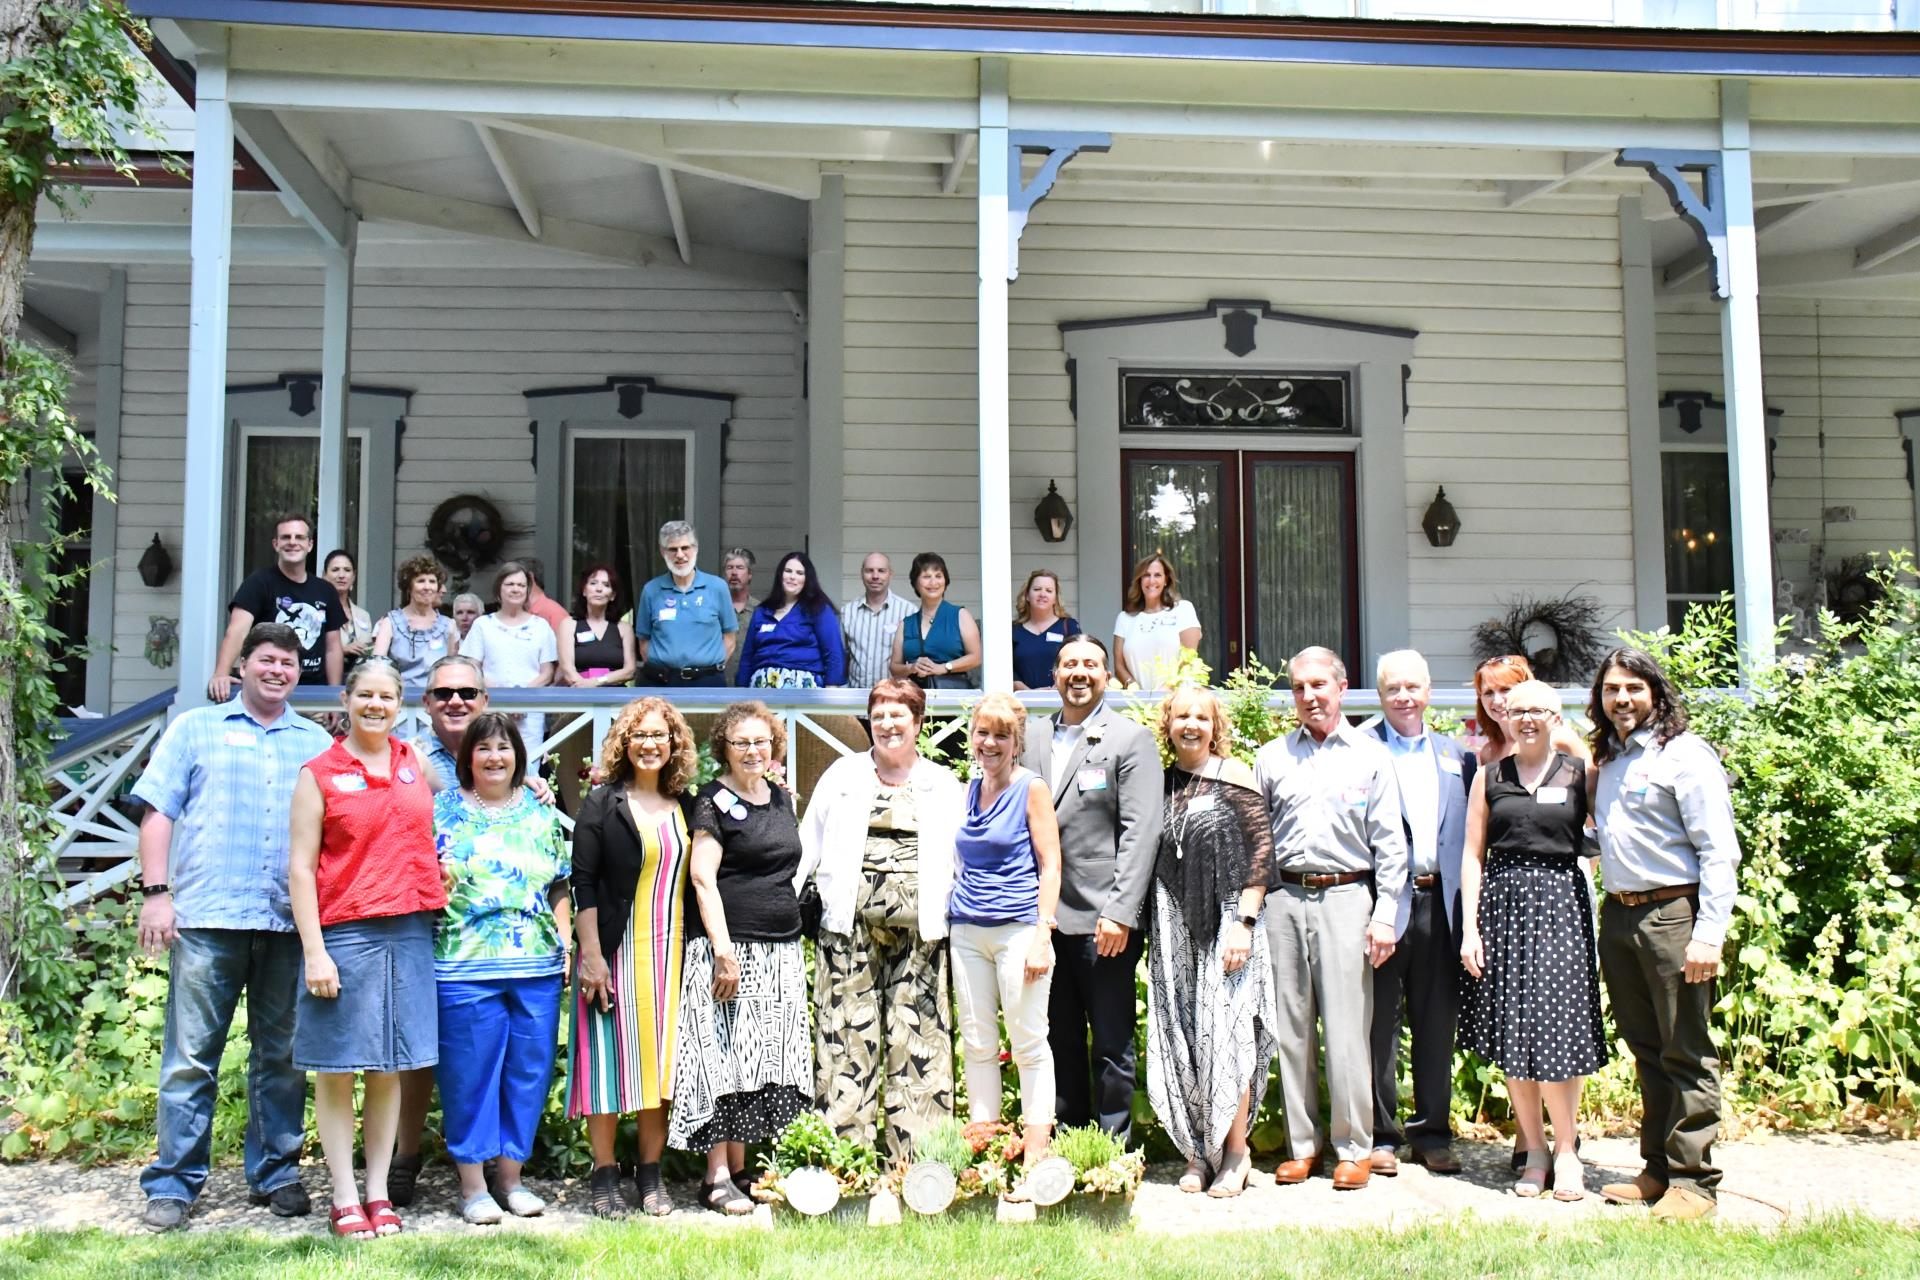 On July 20, 2018, nearly 50 members of the community gathered to celebrate the 10th Anniversary of the Carson City Cultural Commission at Bliss Mansion.